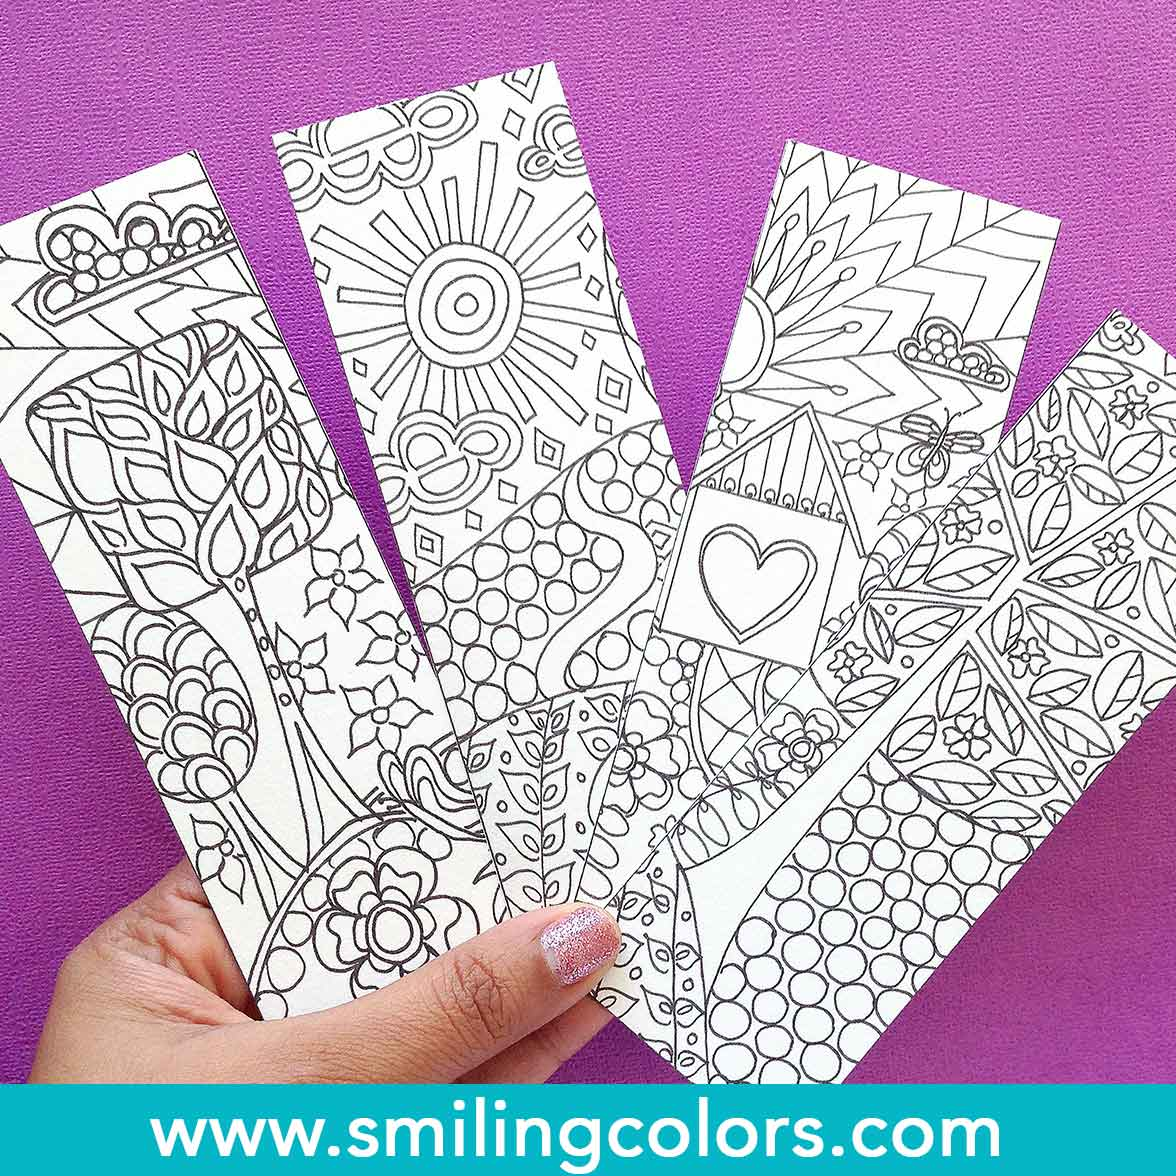 Bookmarks To Color That You Can Download And Enjoy Now